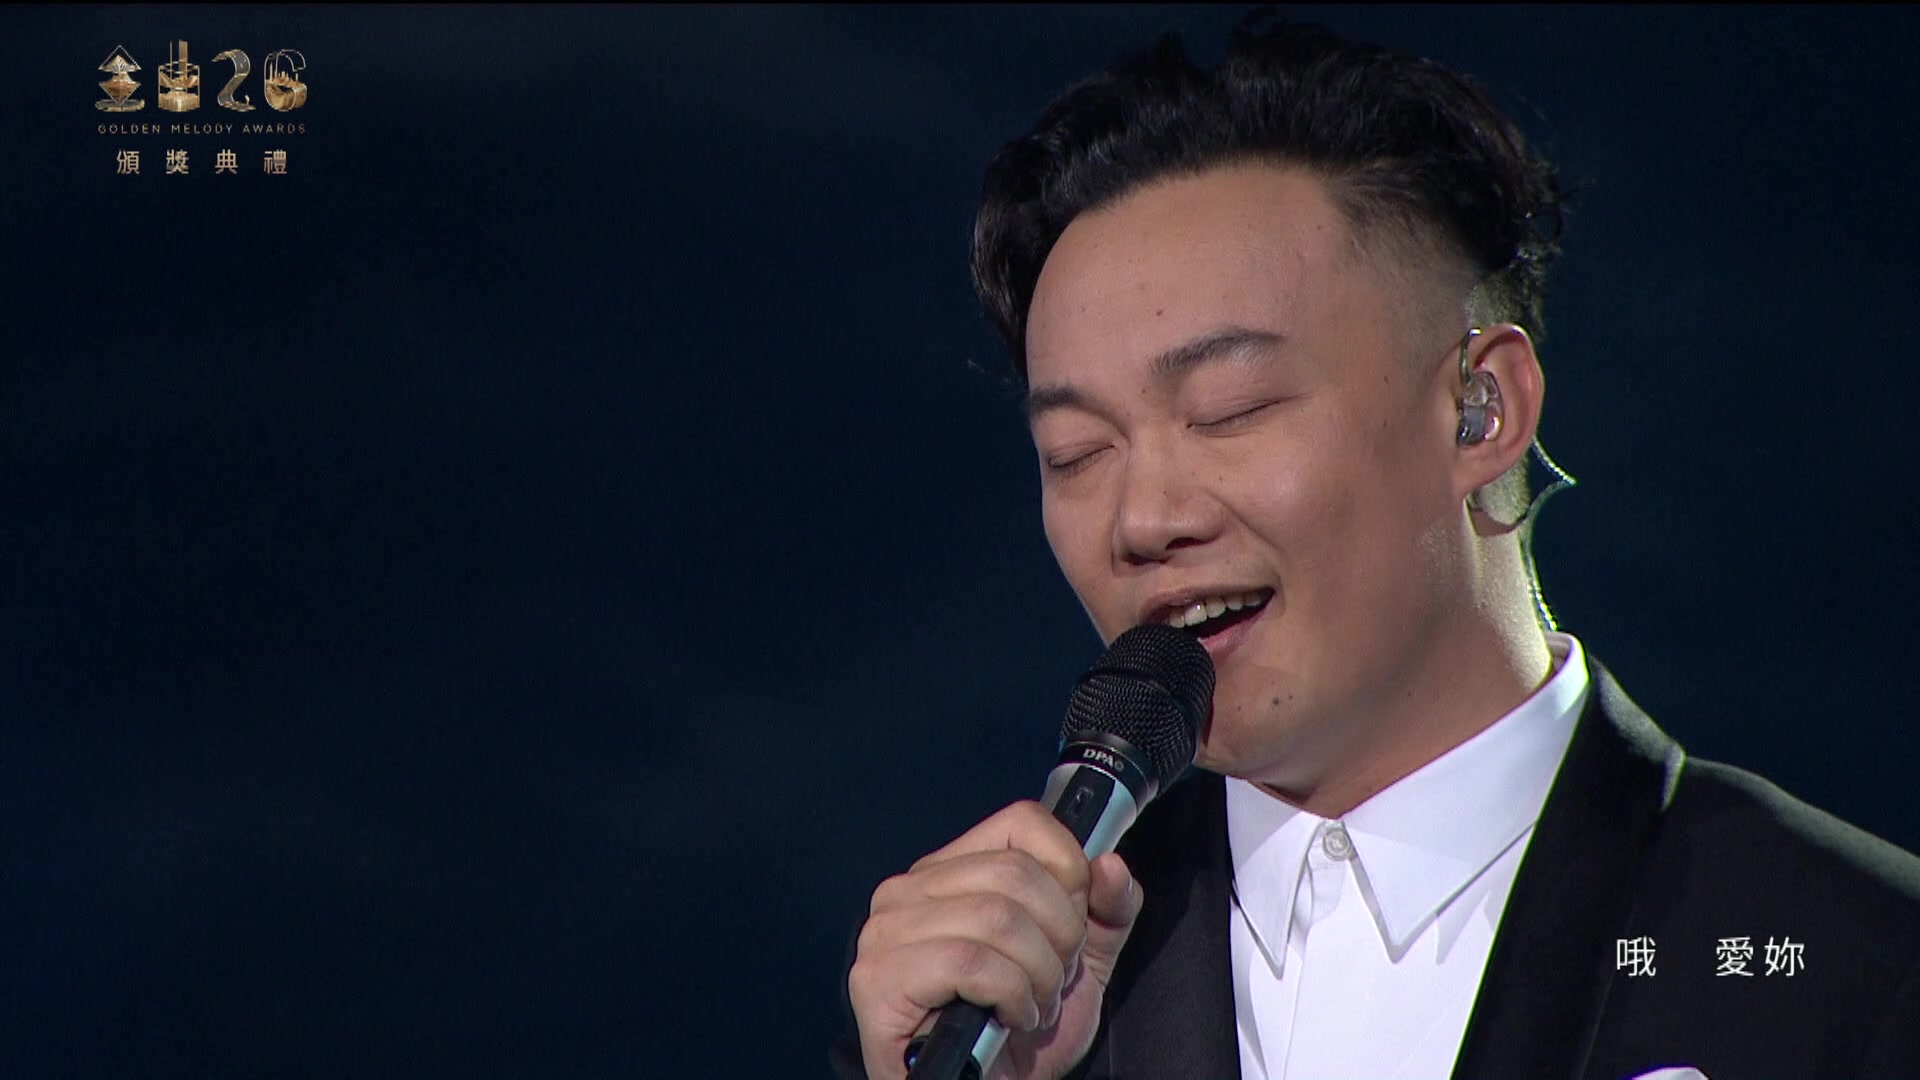 26th Golden Melody Awards Episode 3: Eason Chan's Perfomance